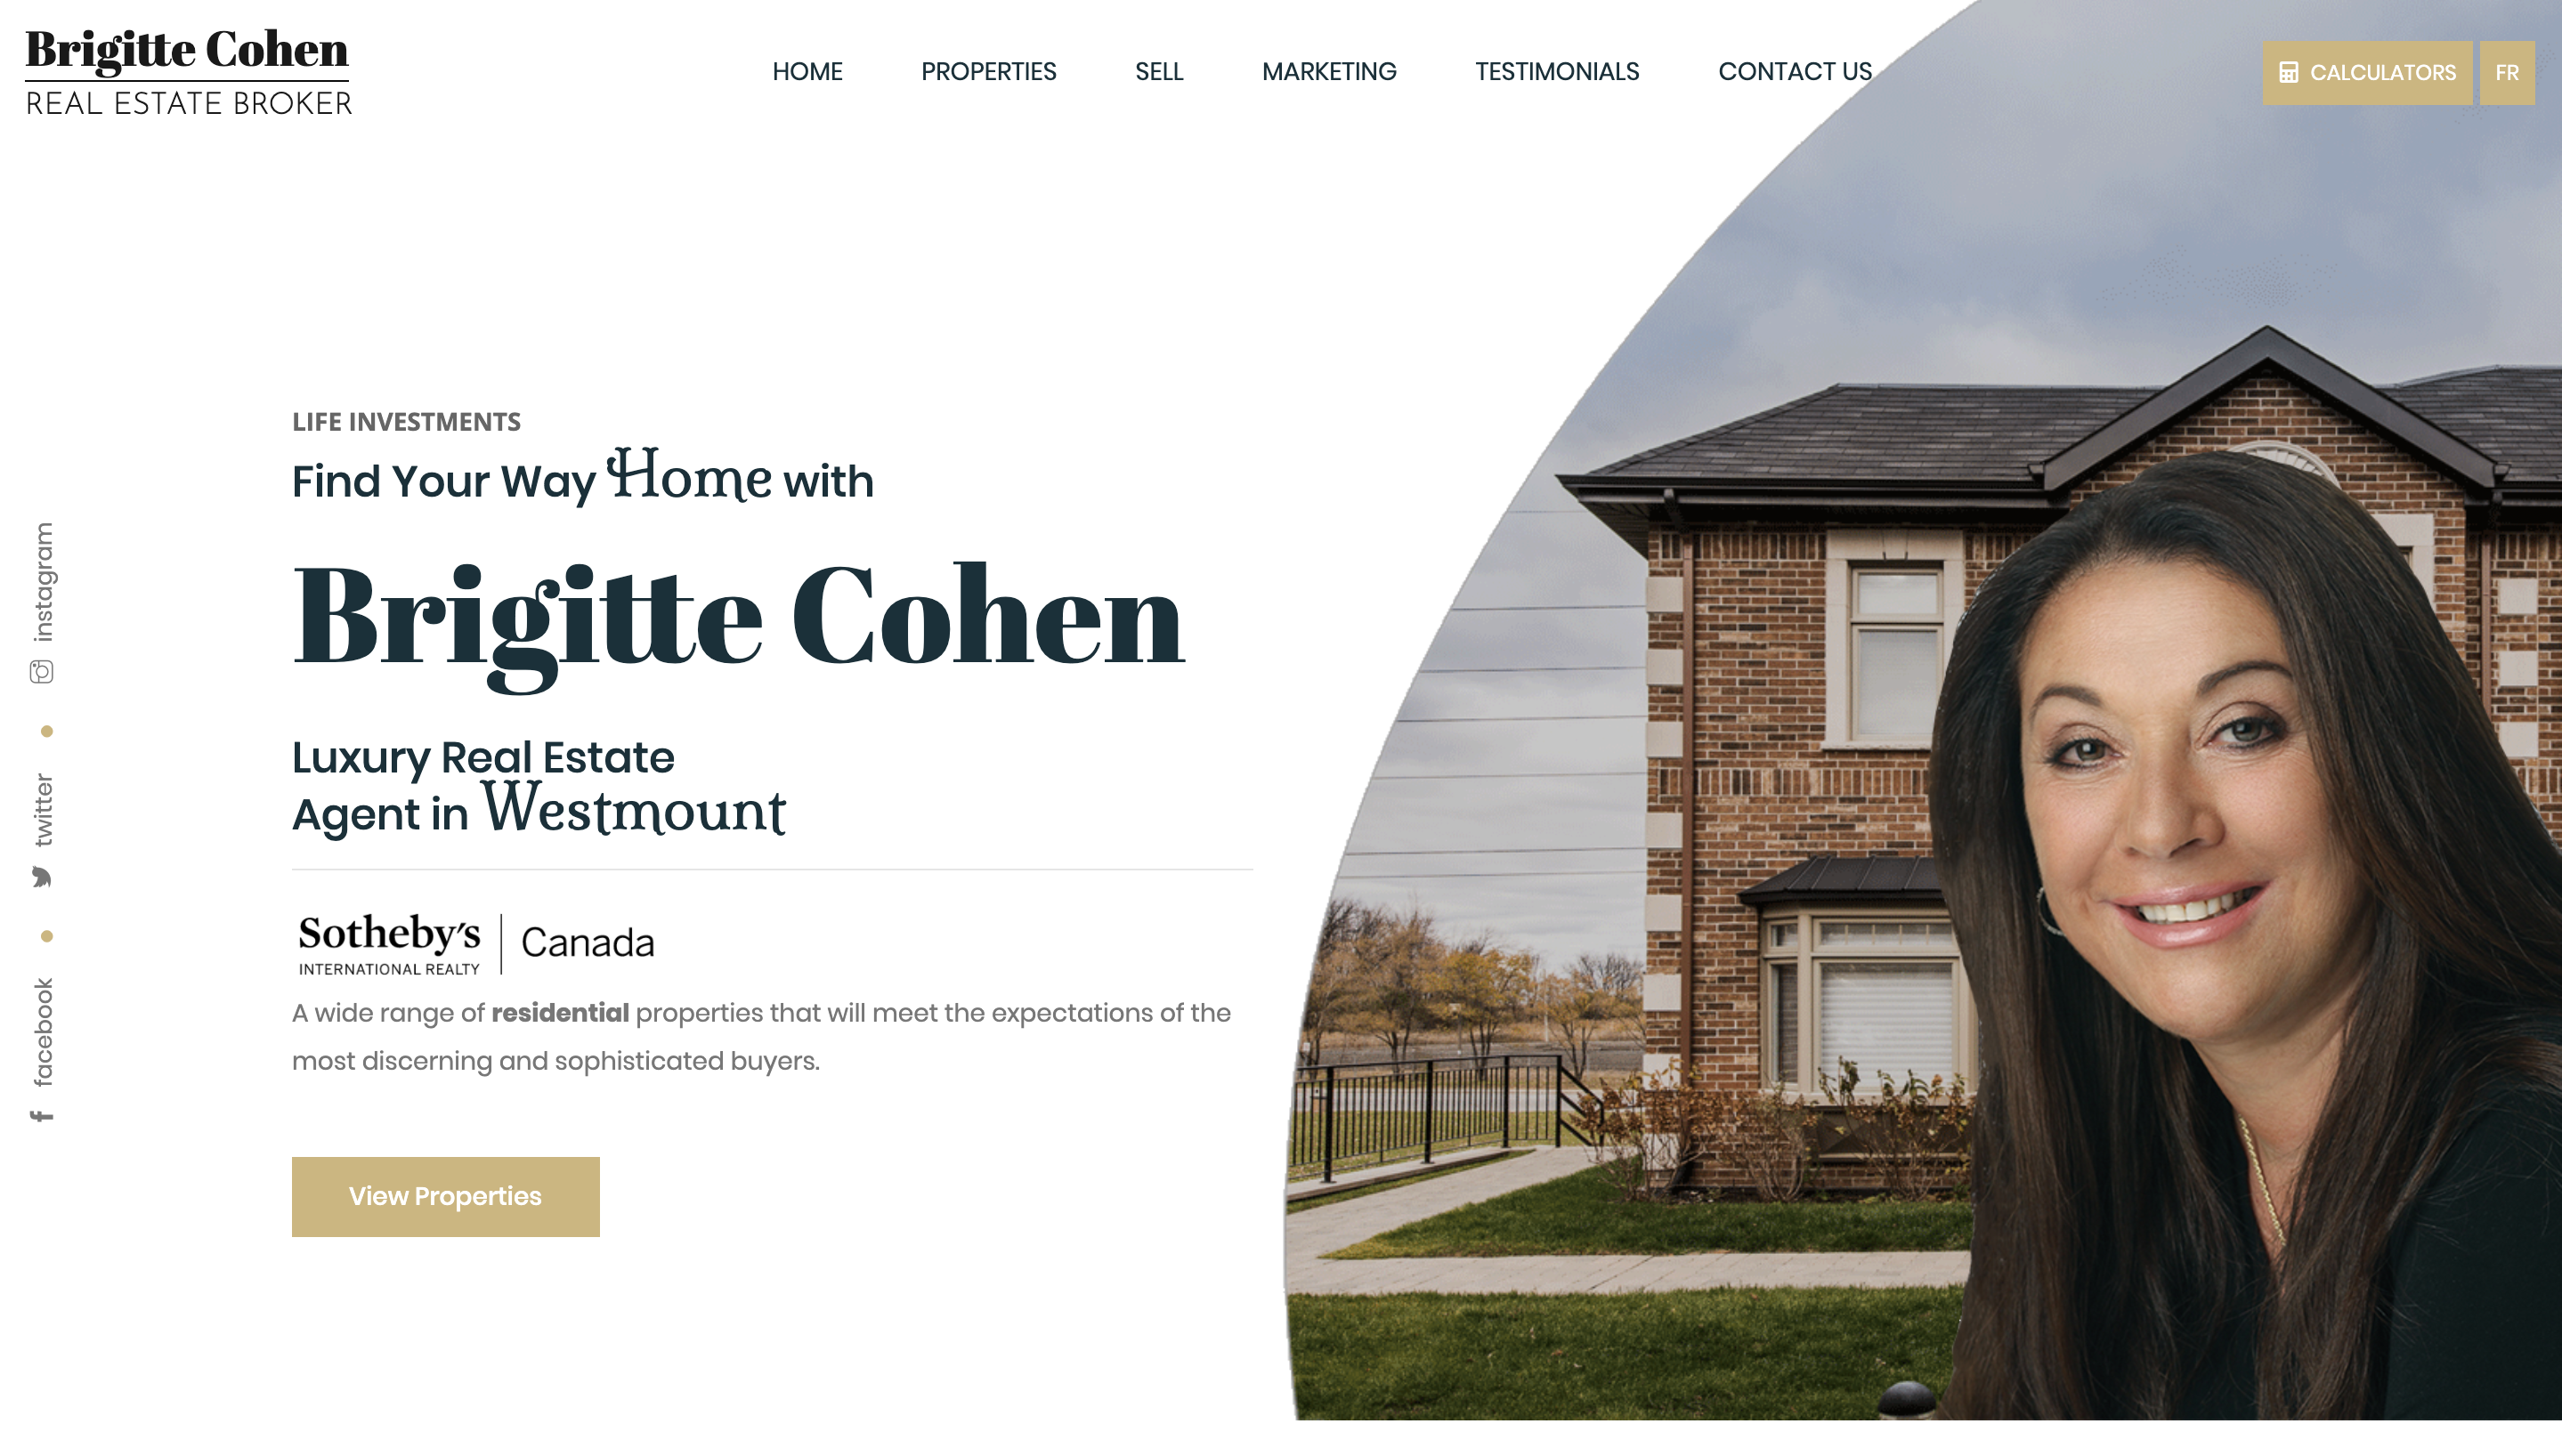 Brigitte Cohen Real Estate Broker